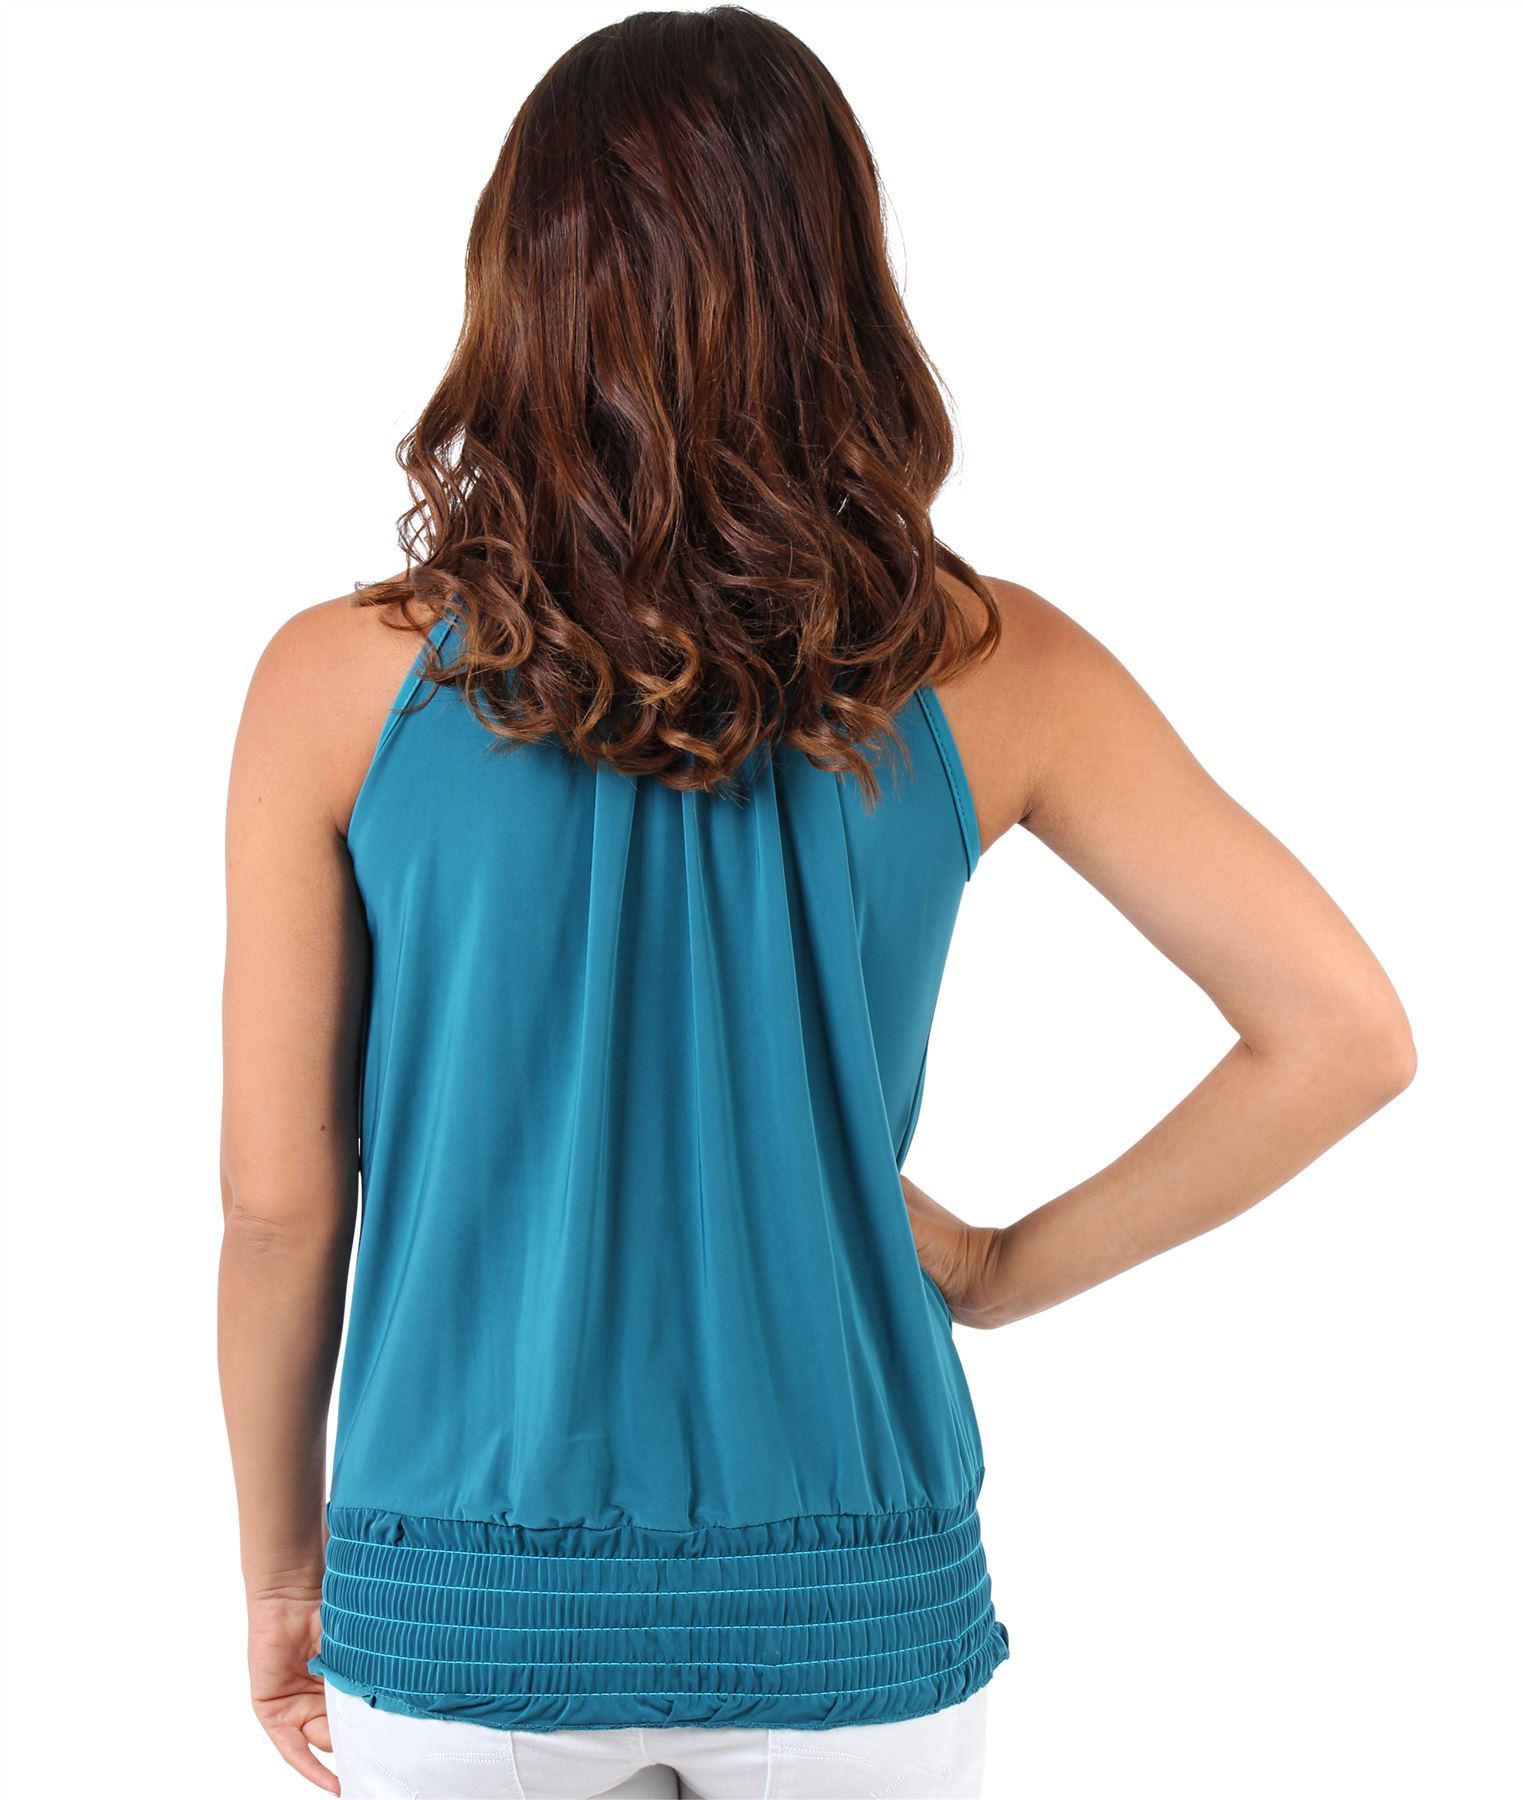 Womens-Ladies-Sleeveless-Blouse-Halter-Neck-Vest-Top-Party-T-Shirt-Plus-Size thumbnail 22